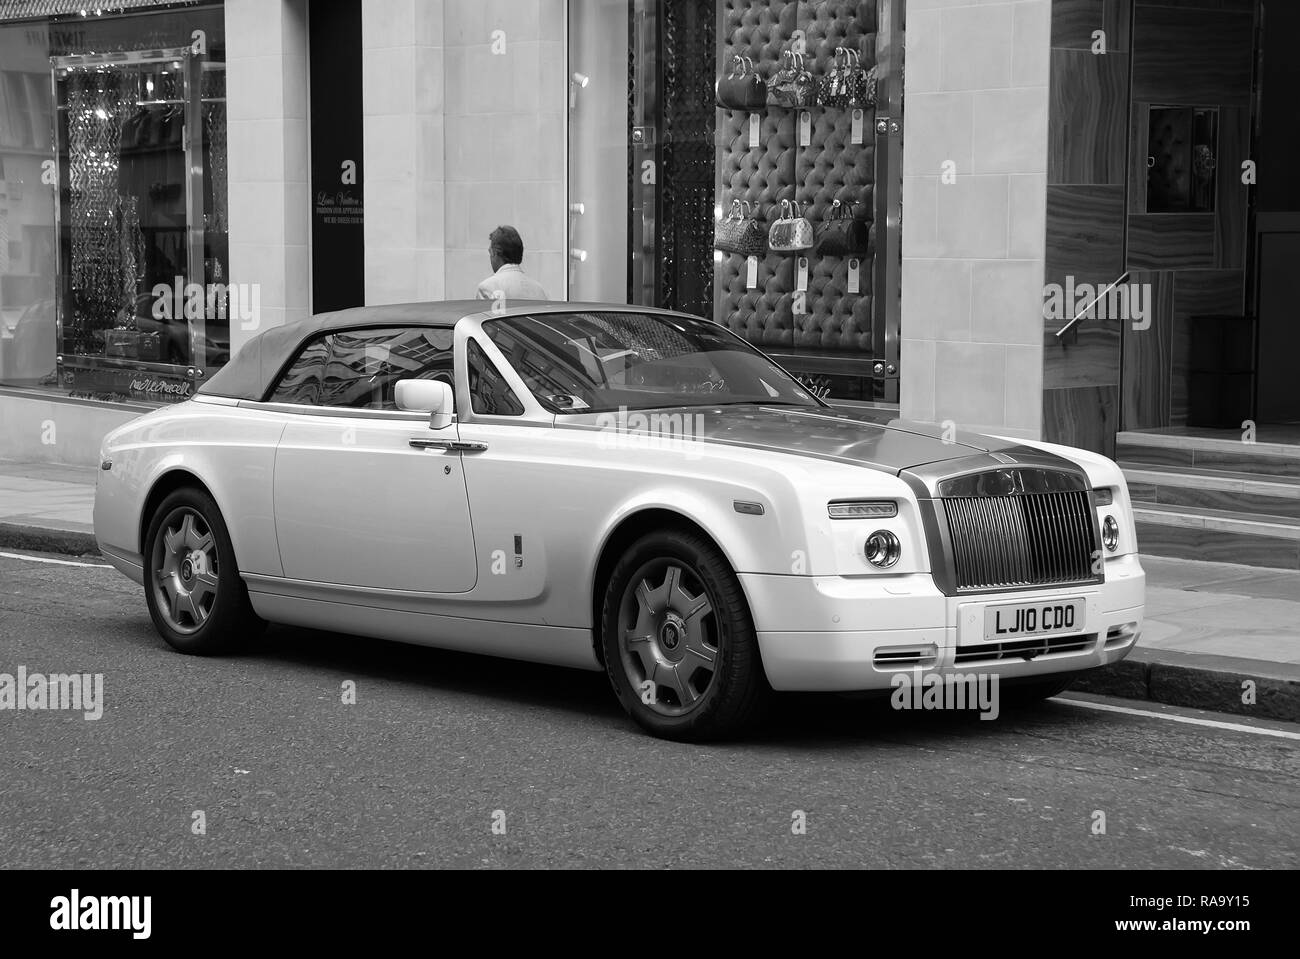 London, United Kingdom - February 25, 2010: car parked at shop window. Luxury automobile on city street. Motor transport and transportation. Travelling or trip and wanderlust. Stock Photo